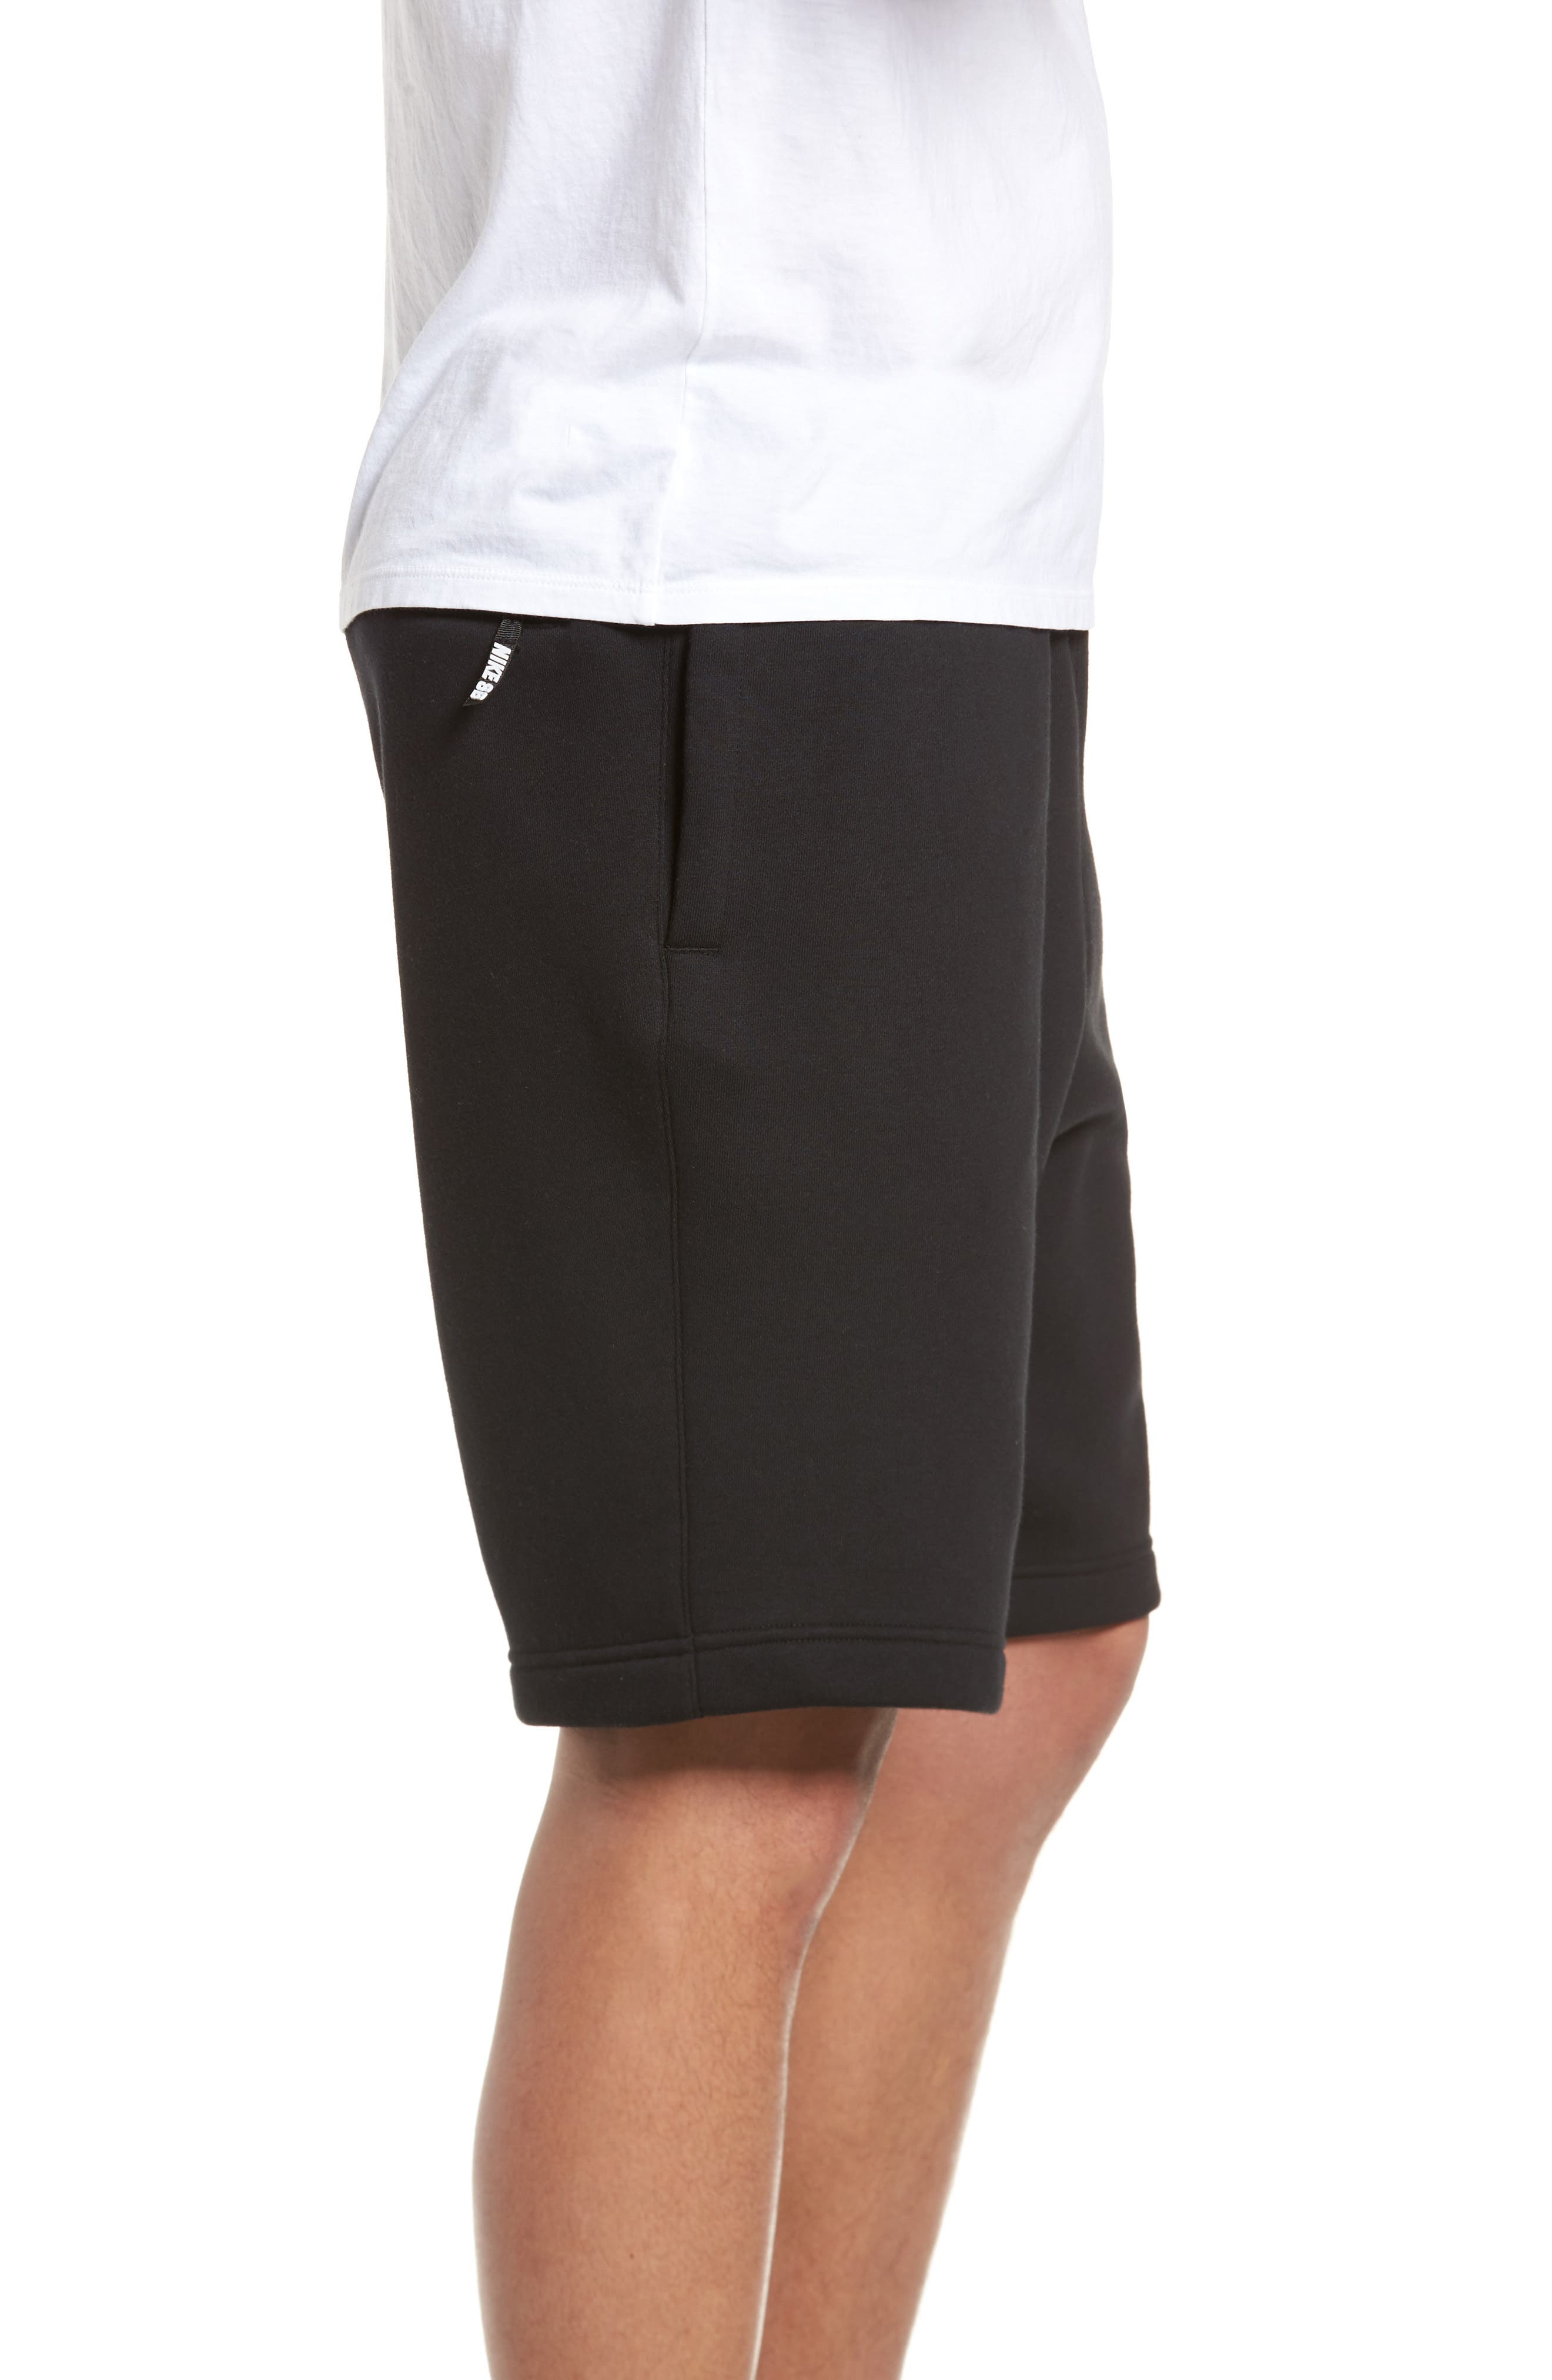 Fleece Shorts,                             Alternate thumbnail 3, color,                             Black/ White